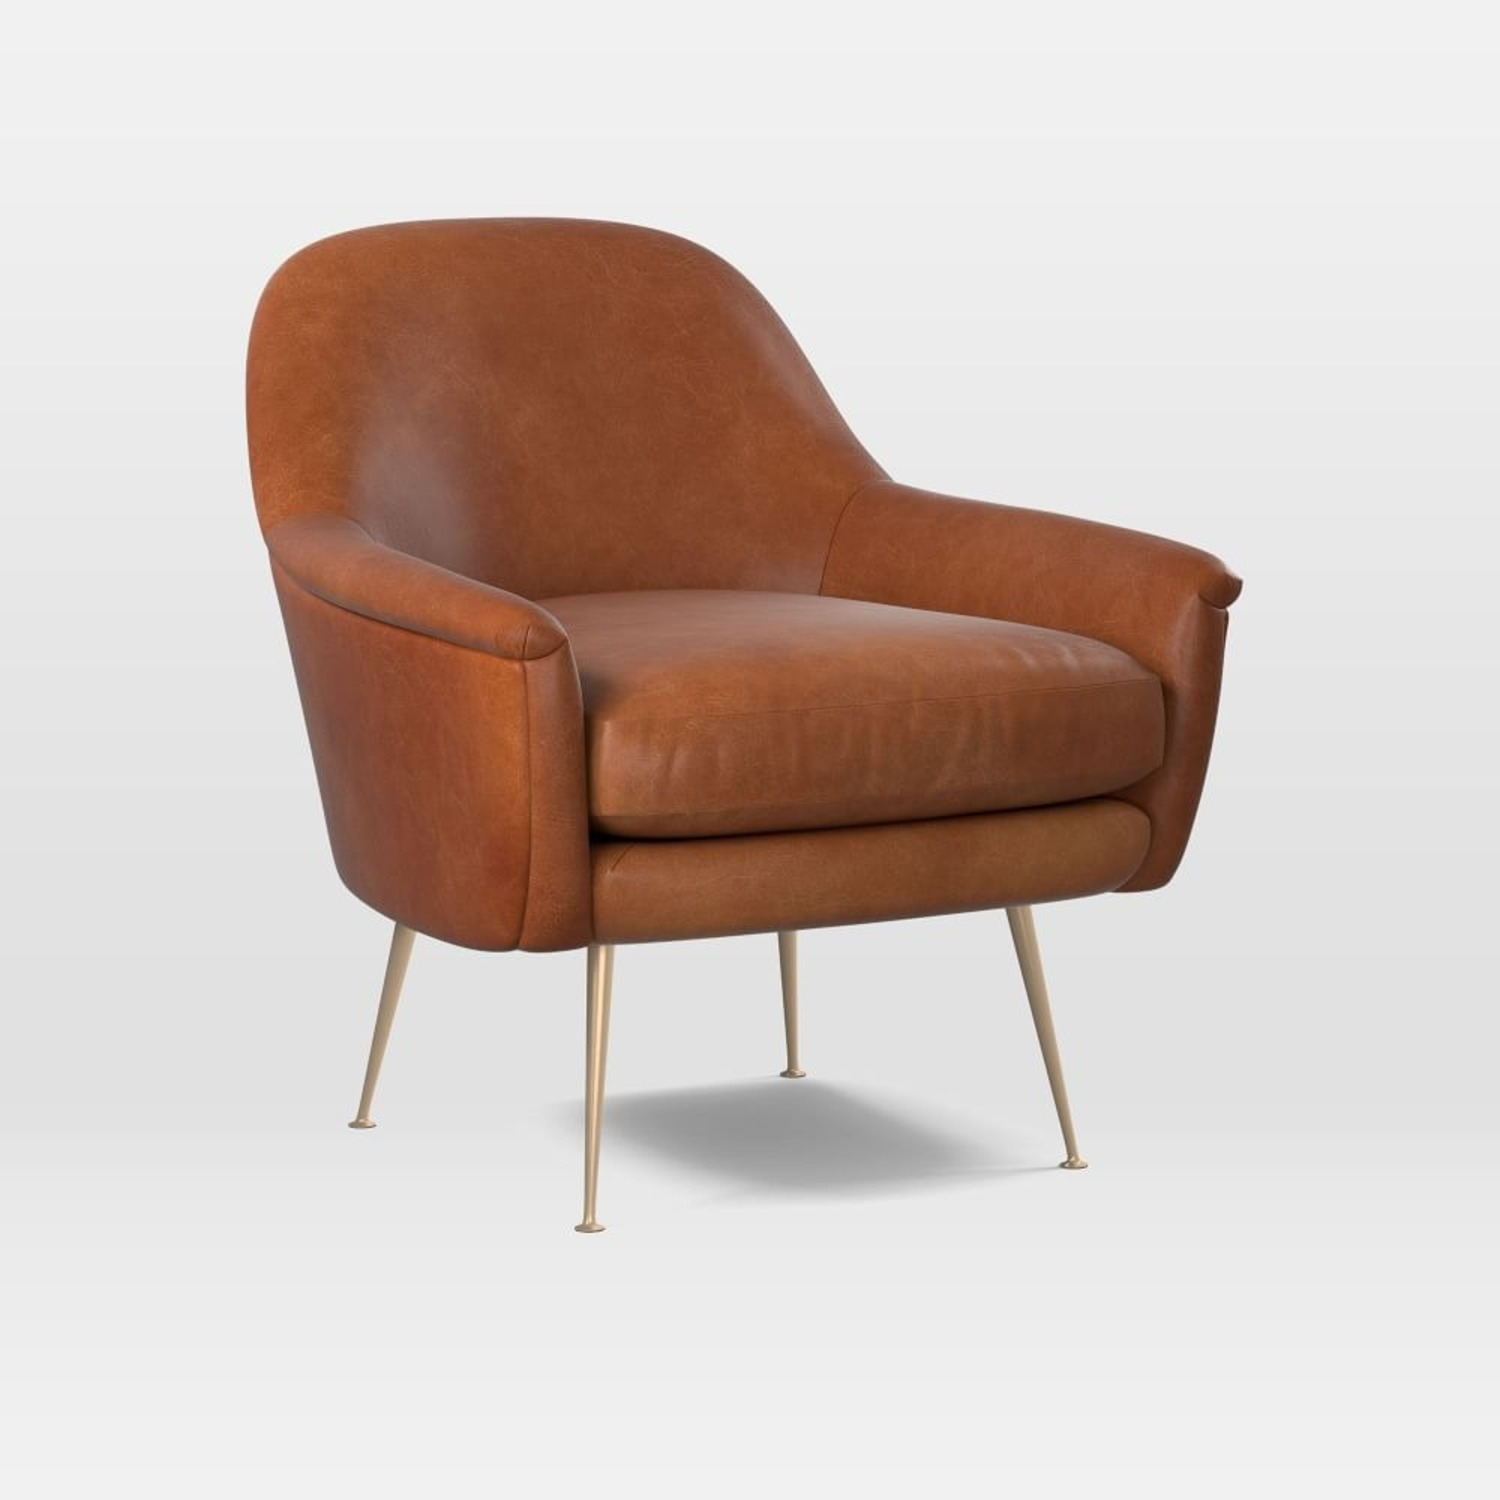 West Elm Phoebe Upholstered Mid-Century Chair - image-2